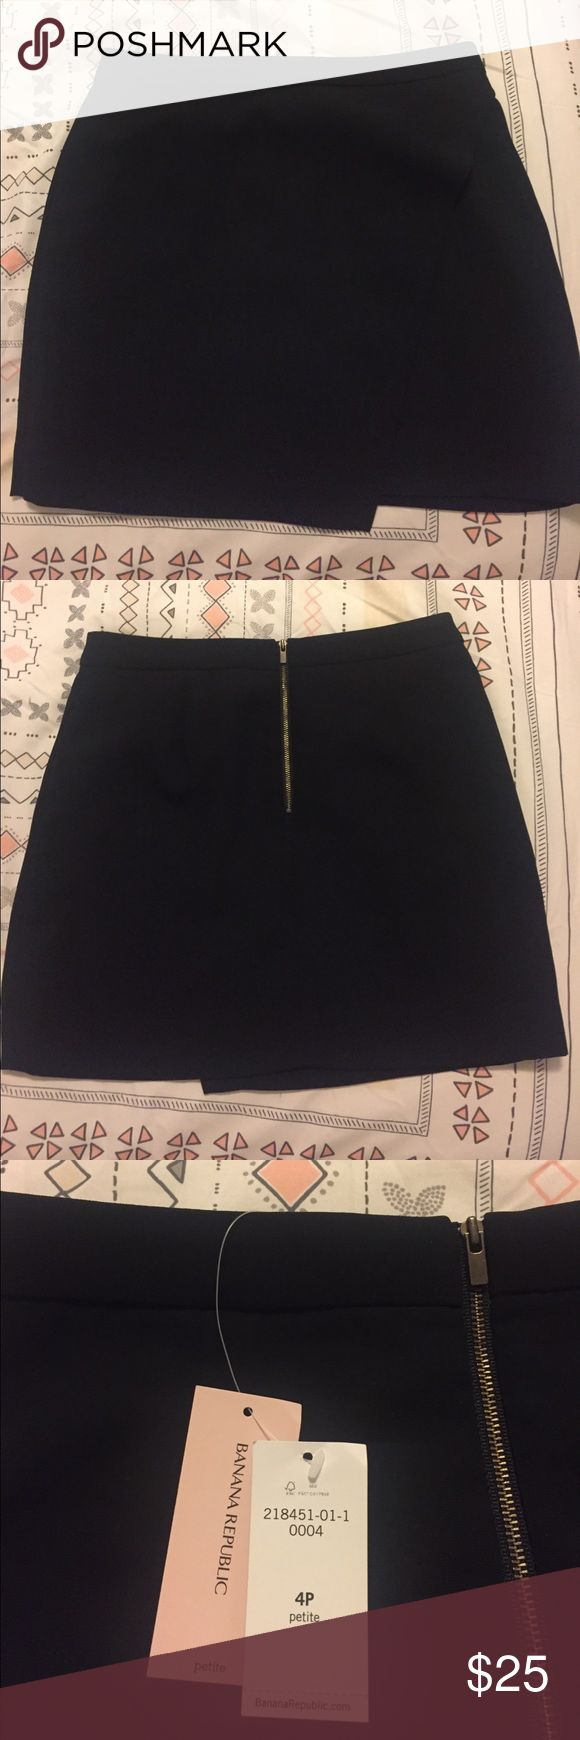 Banana Republic Petite black wrap skirt Brand new with tags! Black mini skirt that zips up in the back, cute wrap around style. Size 4P (petite) from Banana Republic's petite collection. Too small for me sadly so I'm selling. Tag Michael Kors, Marc jacobs, Nine West, coach, Rebecca minkoff, Brandy Melville, Nordstrom BP Banana Republic Skirts Mini